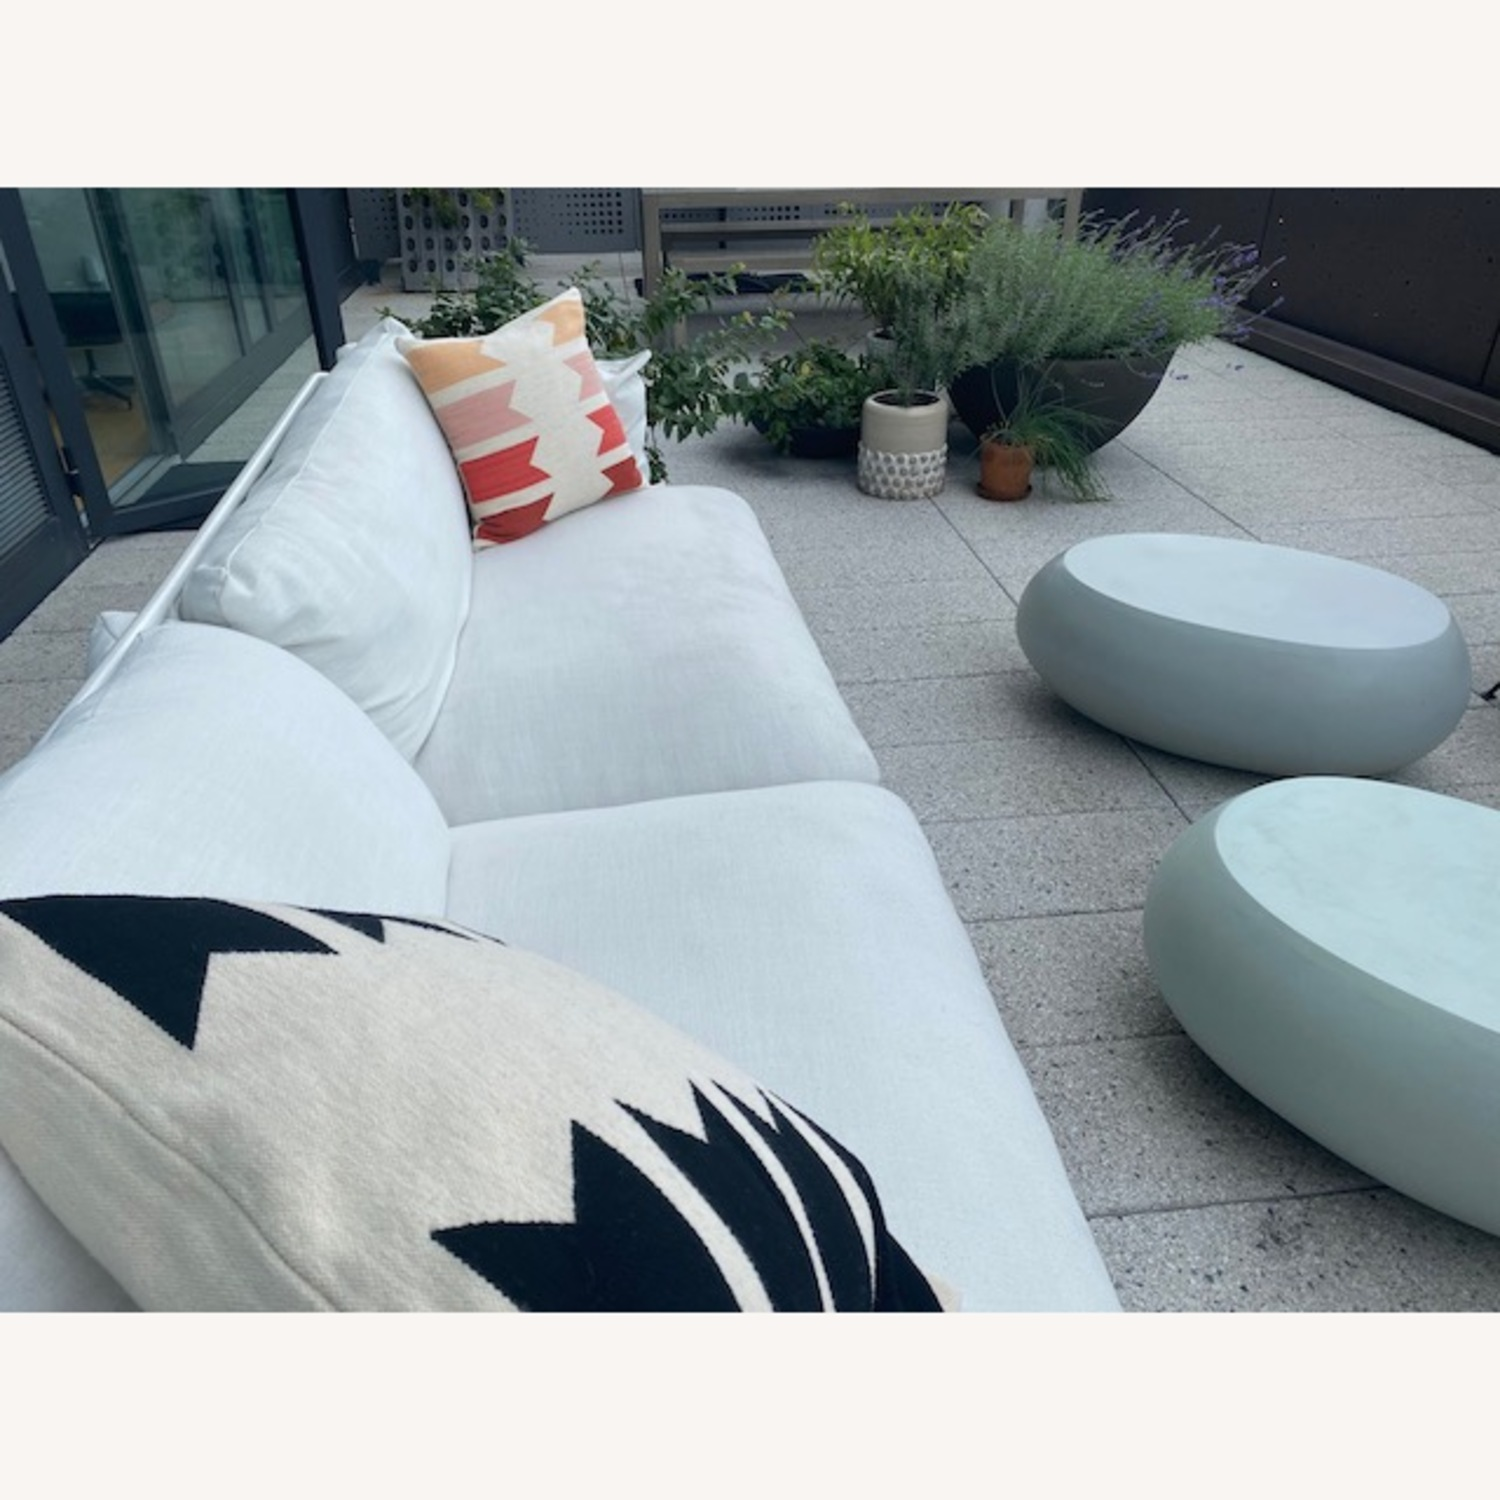 CB2 Fred Segal Outdoor Set - image-3